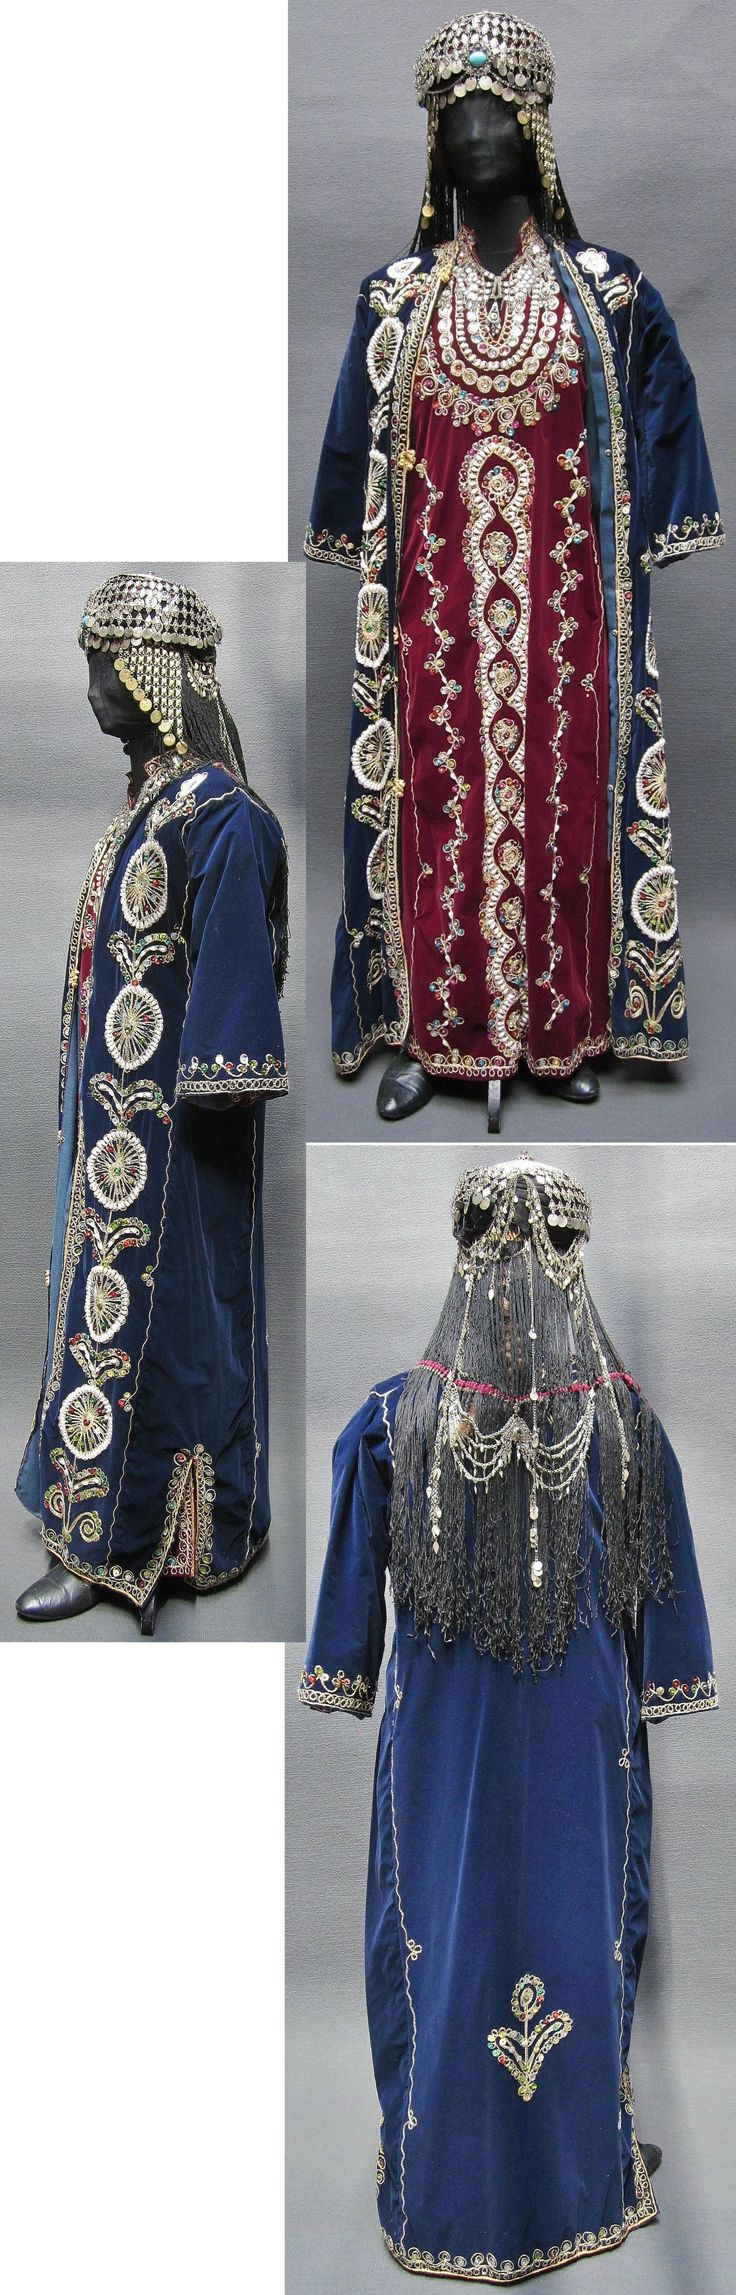 Traditional bridal/festive costume from the Urfa province.  1980s.  From the Arabic speaking population of the region.  Robe and caftan were purchased in the Urfa Çarşısı (Covered Bazaar) in 1987.  The 'başlık' (headgear) is antique. (Kavak Folklor Ekibi & Costume Collection - Antwerpen/Belgium).